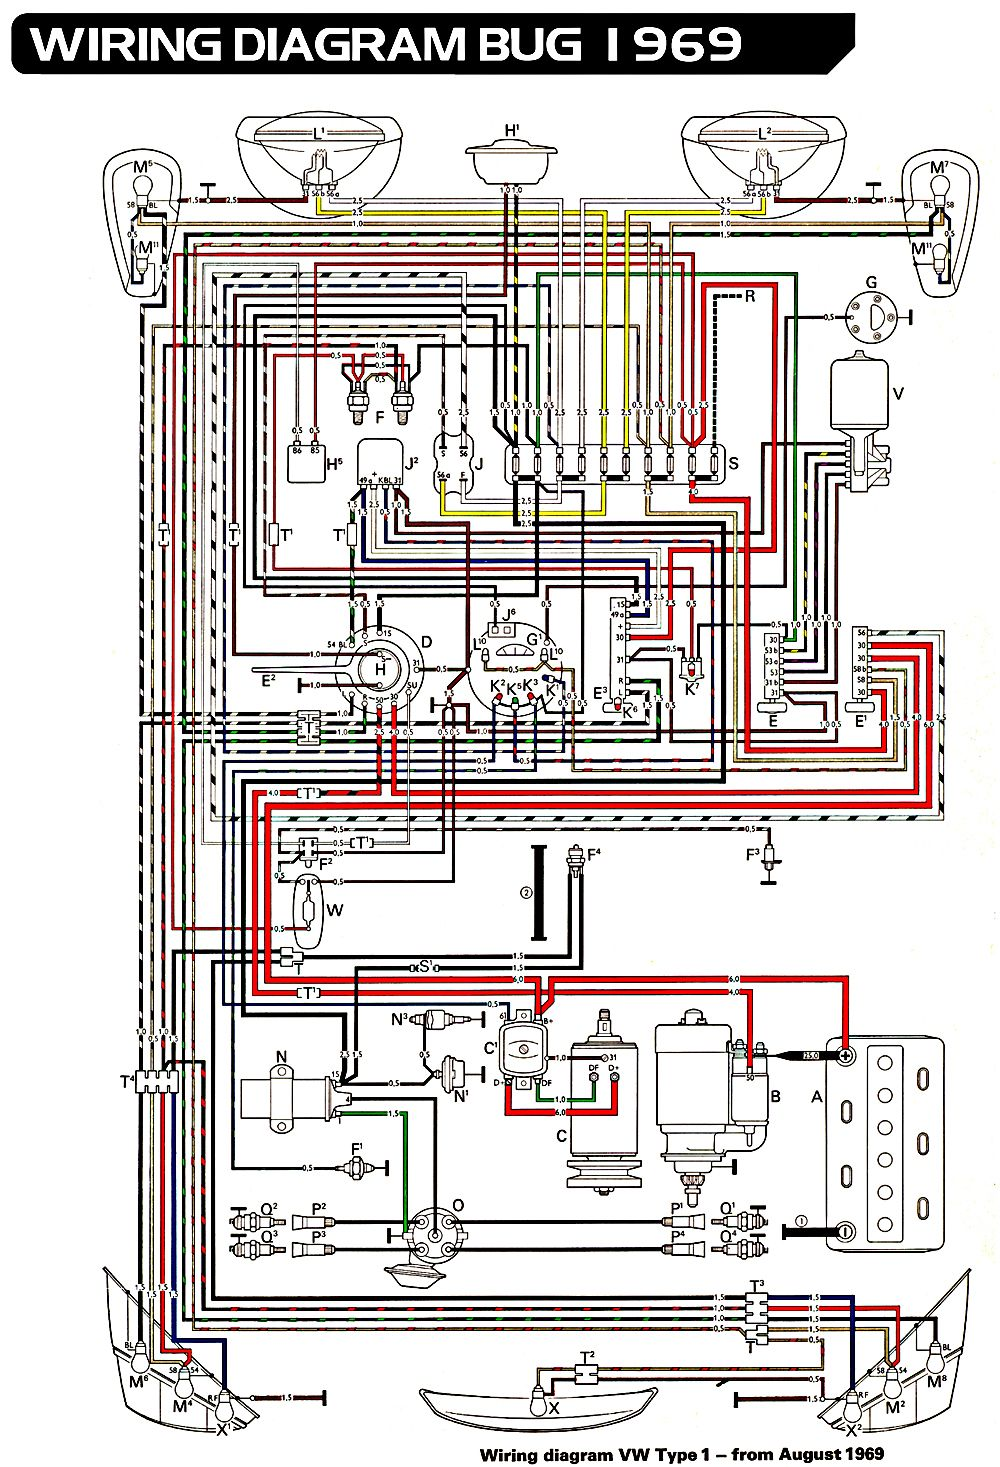 hight resolution of 69 vw bug wiring harness diagrams schematics at 1967 beetle diagram vw baja bug wiring harness